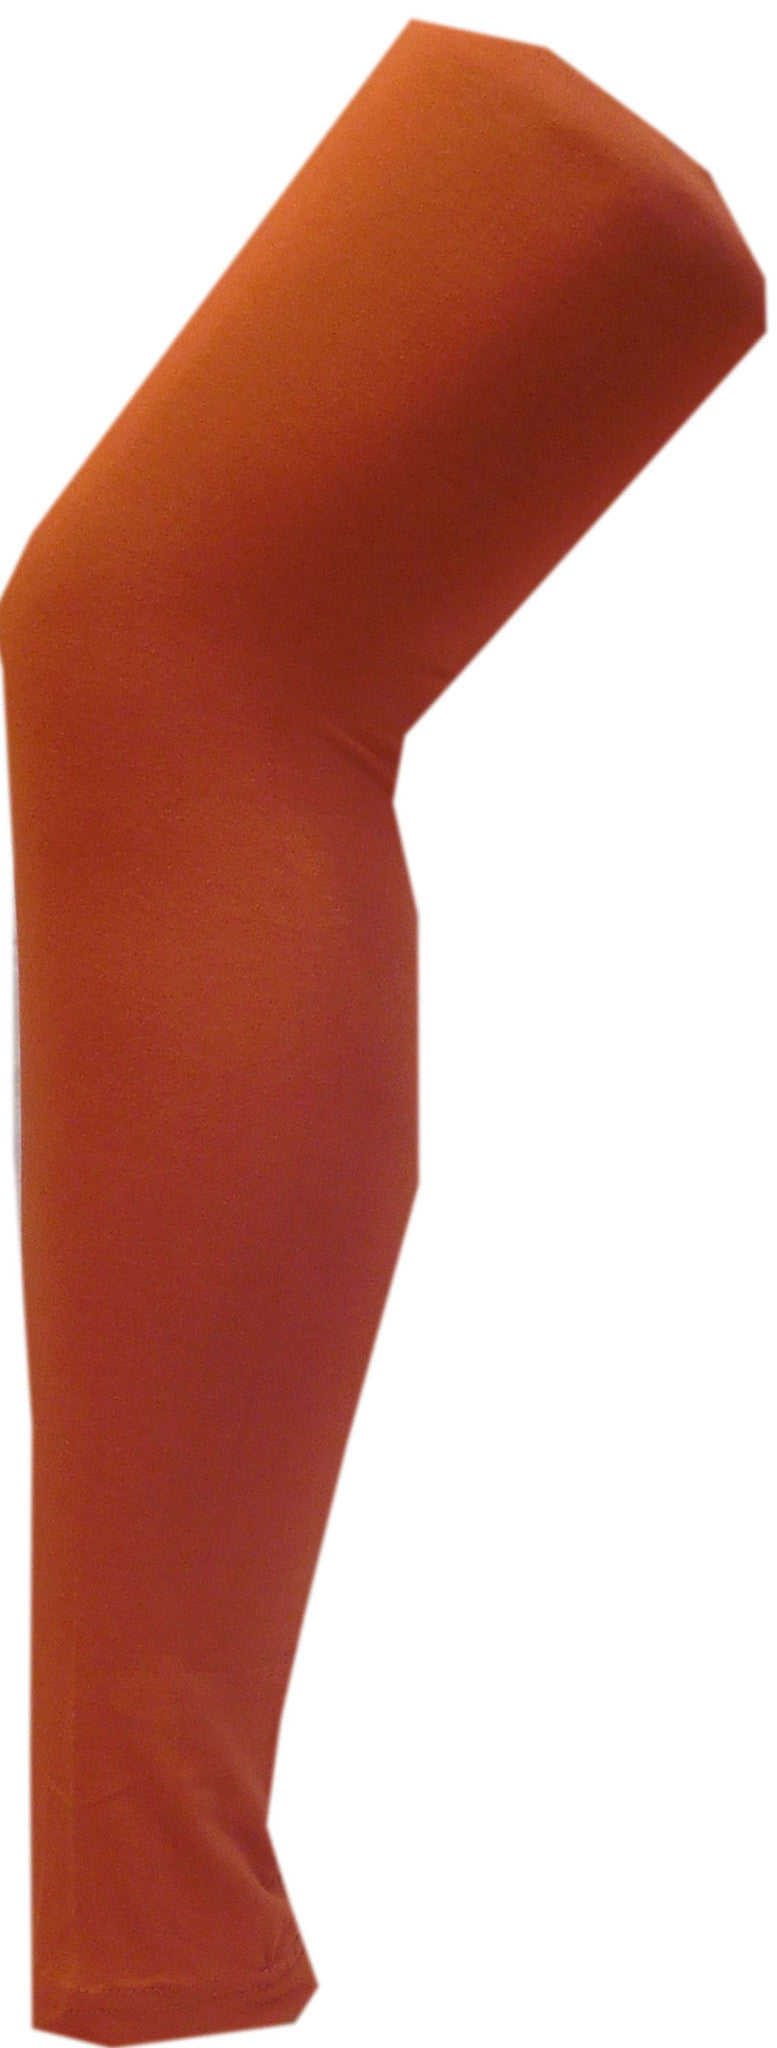 Rust Orange Solid Leggings